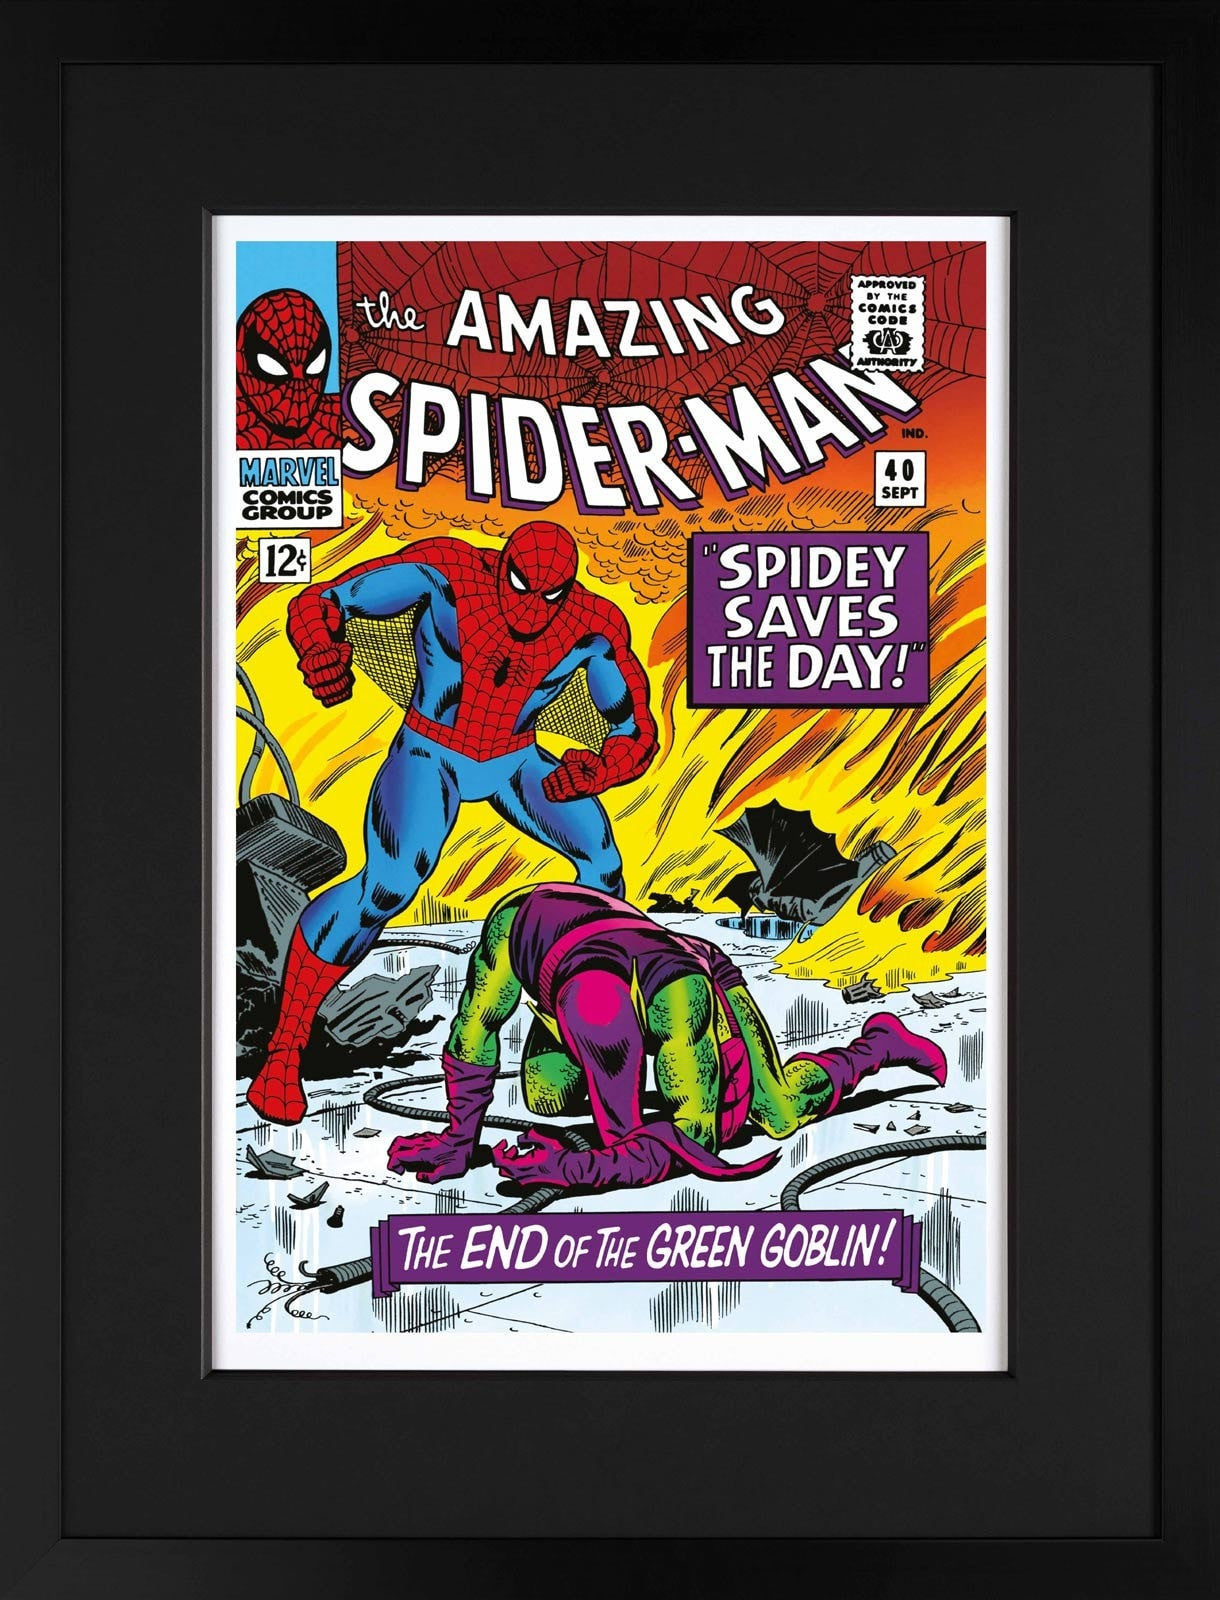 The Amazing Spider-Man #40 - Spidey Saves The Day Stan Lee